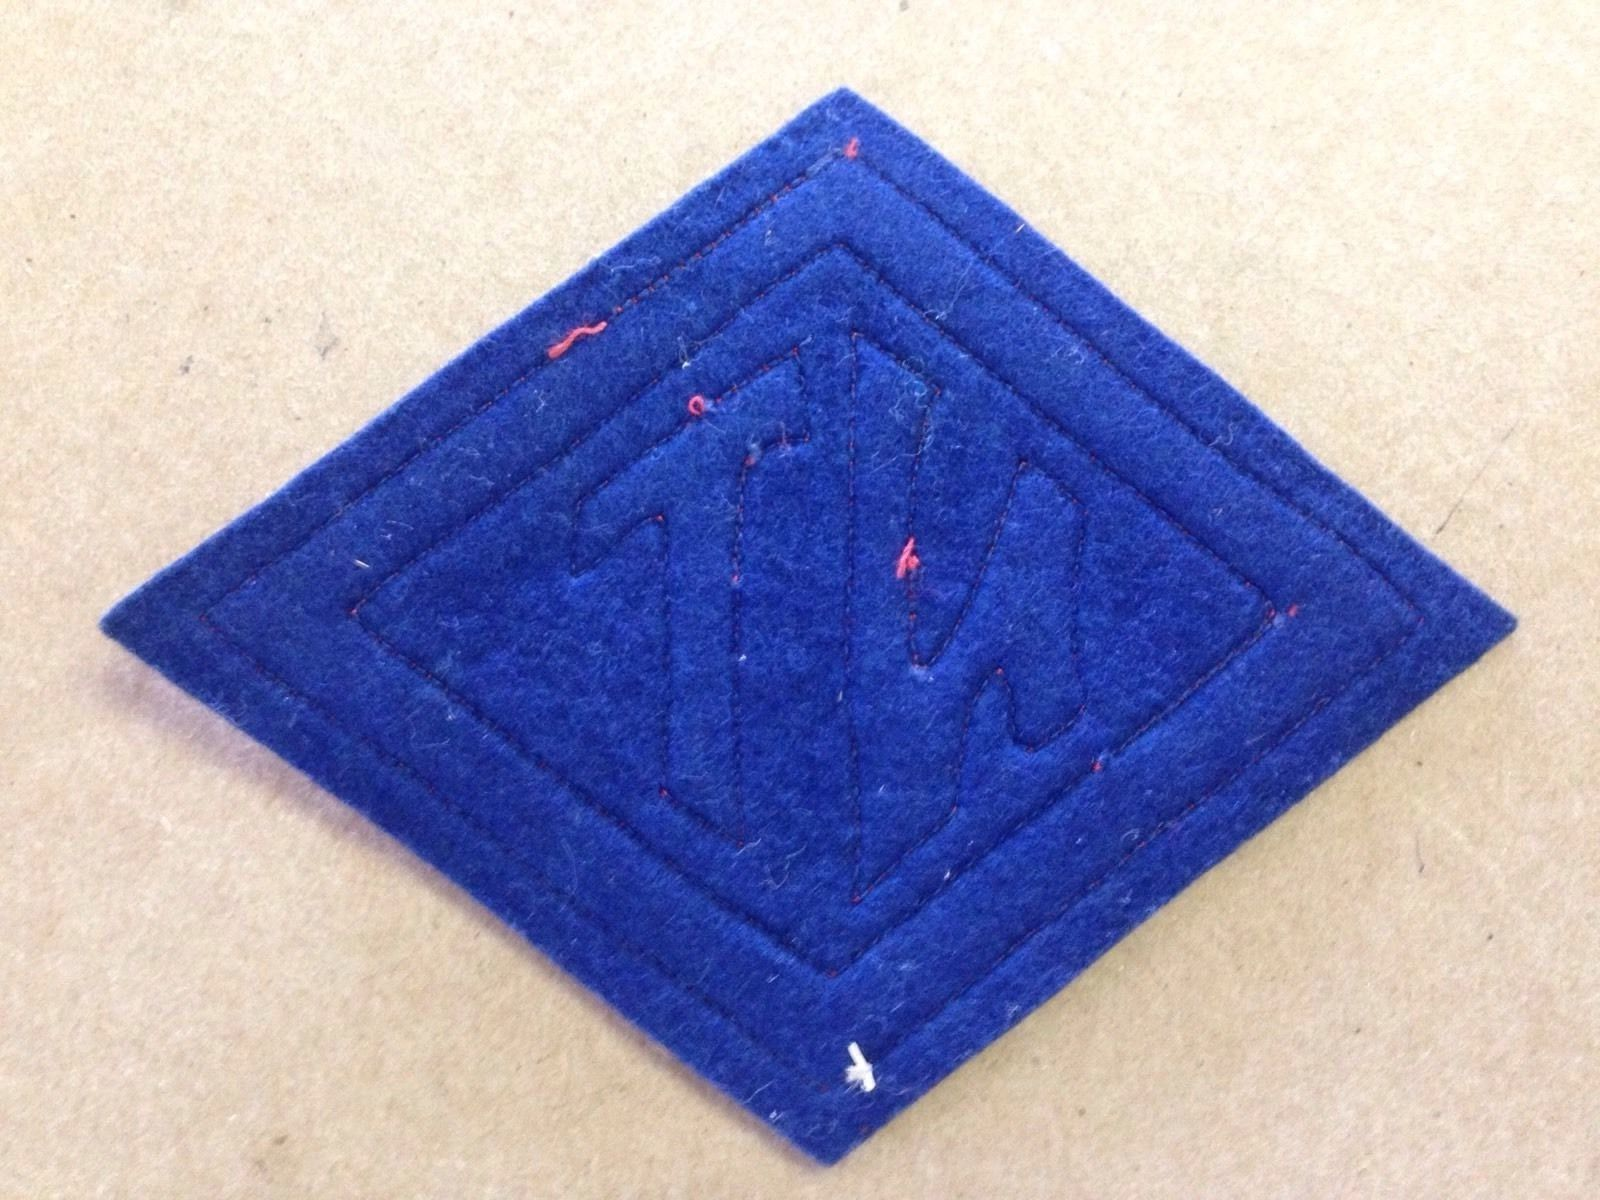 NT red and blue felt patch back.jpg